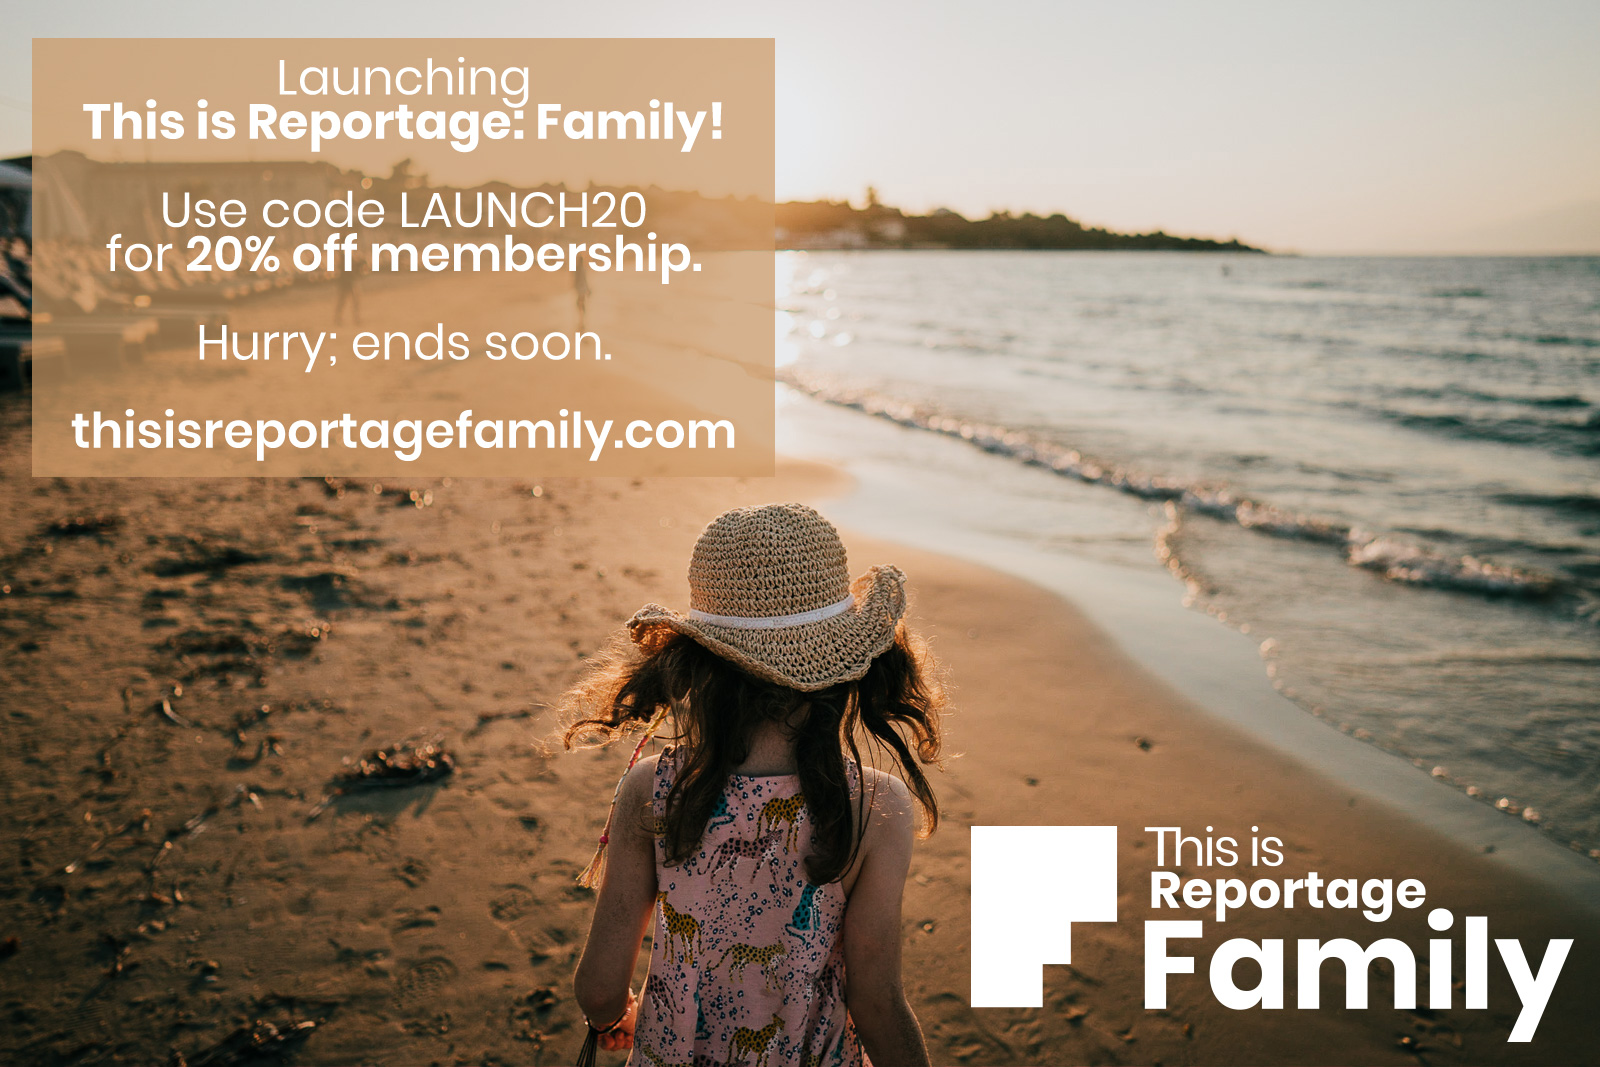 this is reportage: family launch offer